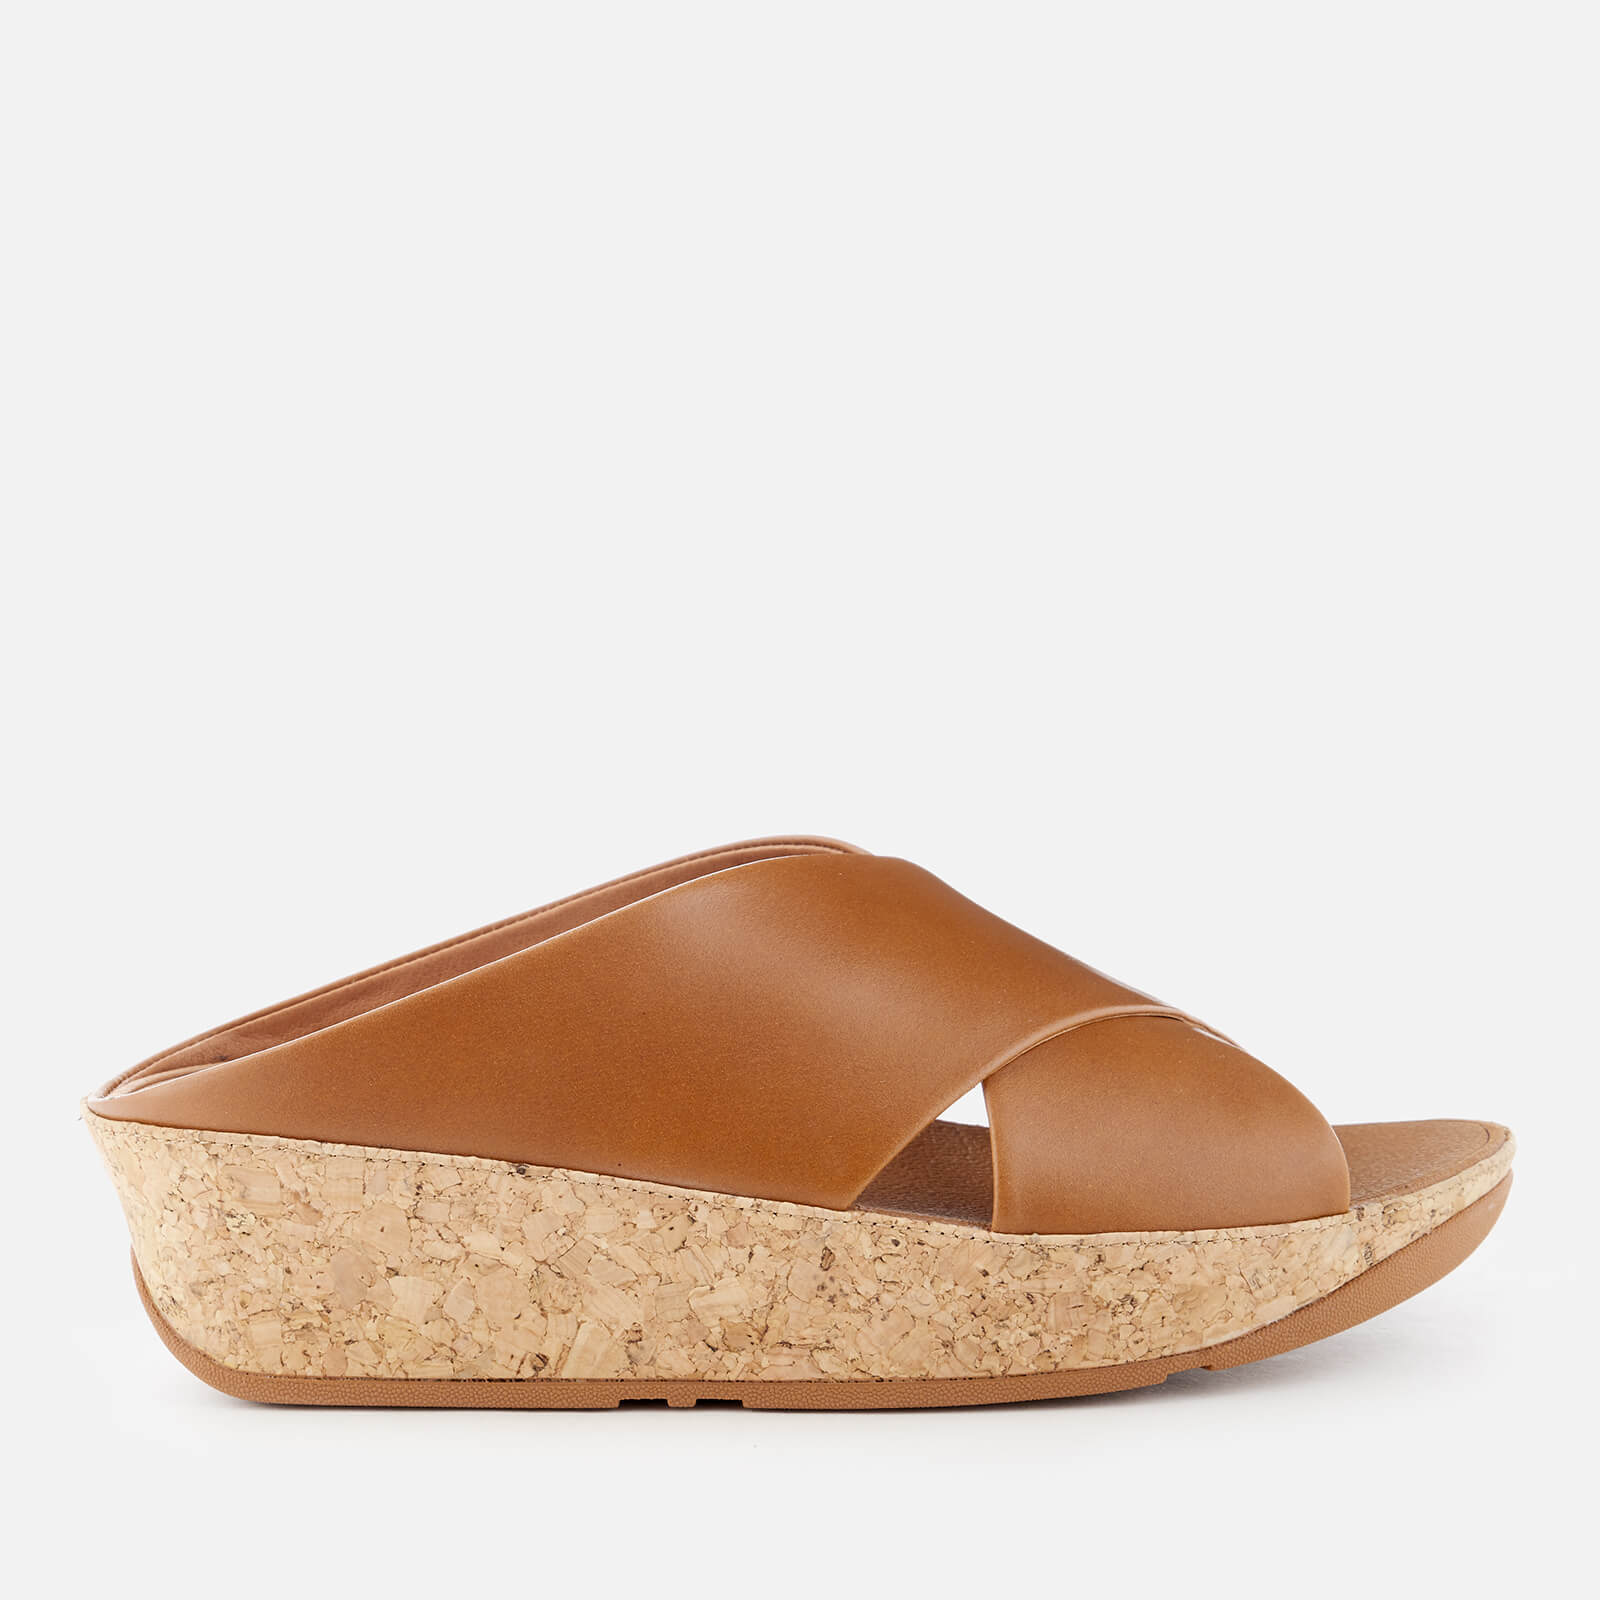 03799f5e6234 FitFlop Women s Kys Slide Leather Sandals - Caramel Womens Accessories